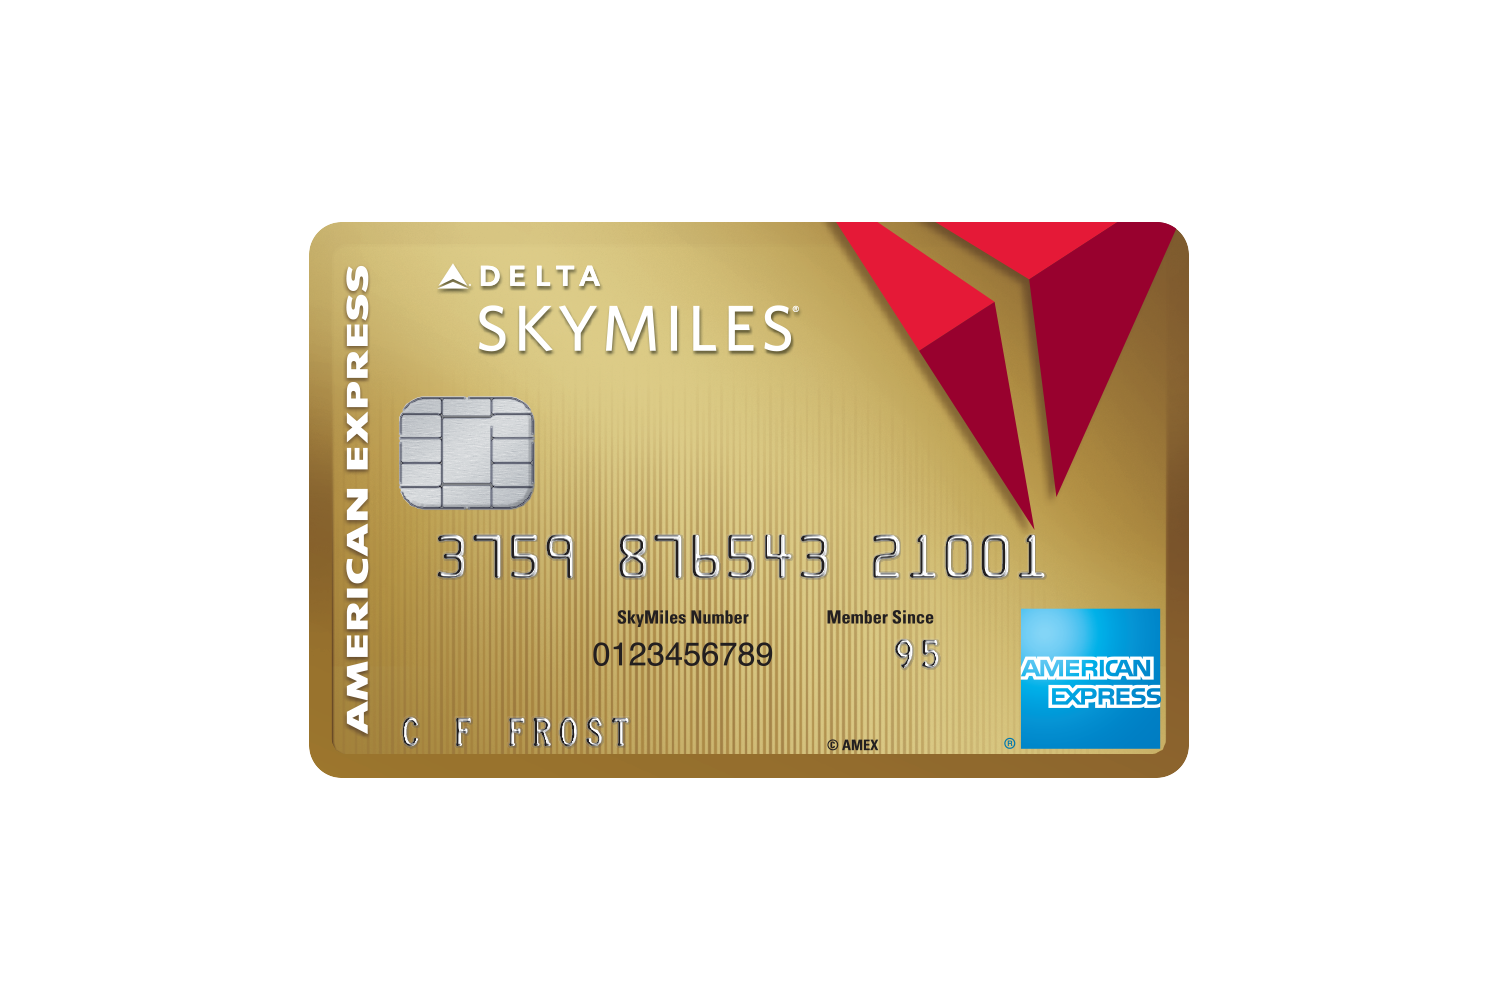 American express frequent flyer credit card dolapgnetband american express frequent flyer credit card colourmoves